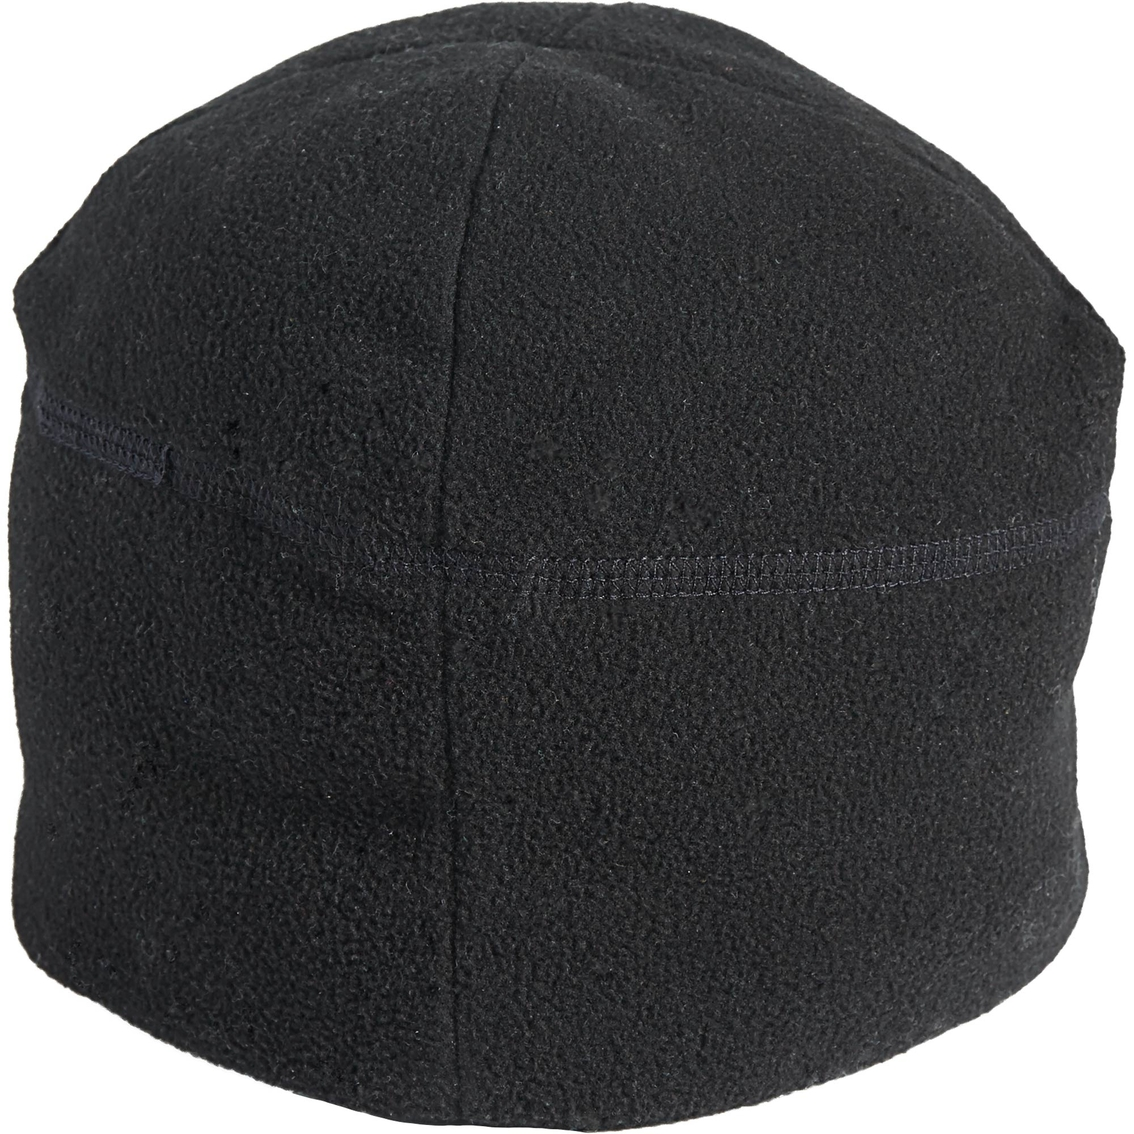 Dlats Army Black Micro Fleece Cap  59d5269ee